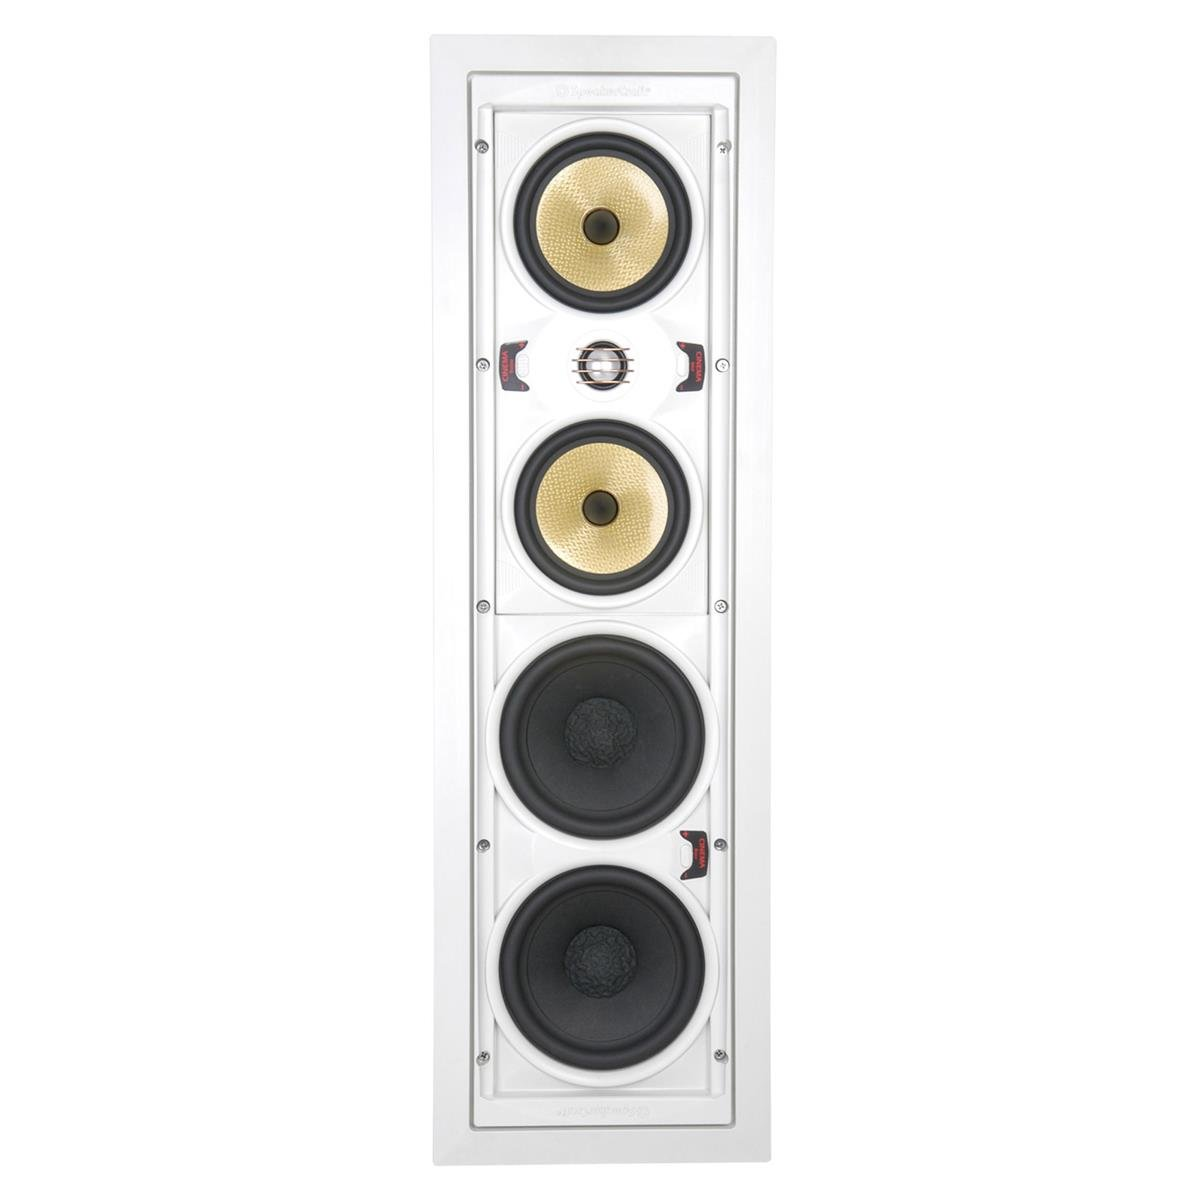 SpeakerCraft AIM Cinema 5 Single In-Wall Speaker - Each (White)